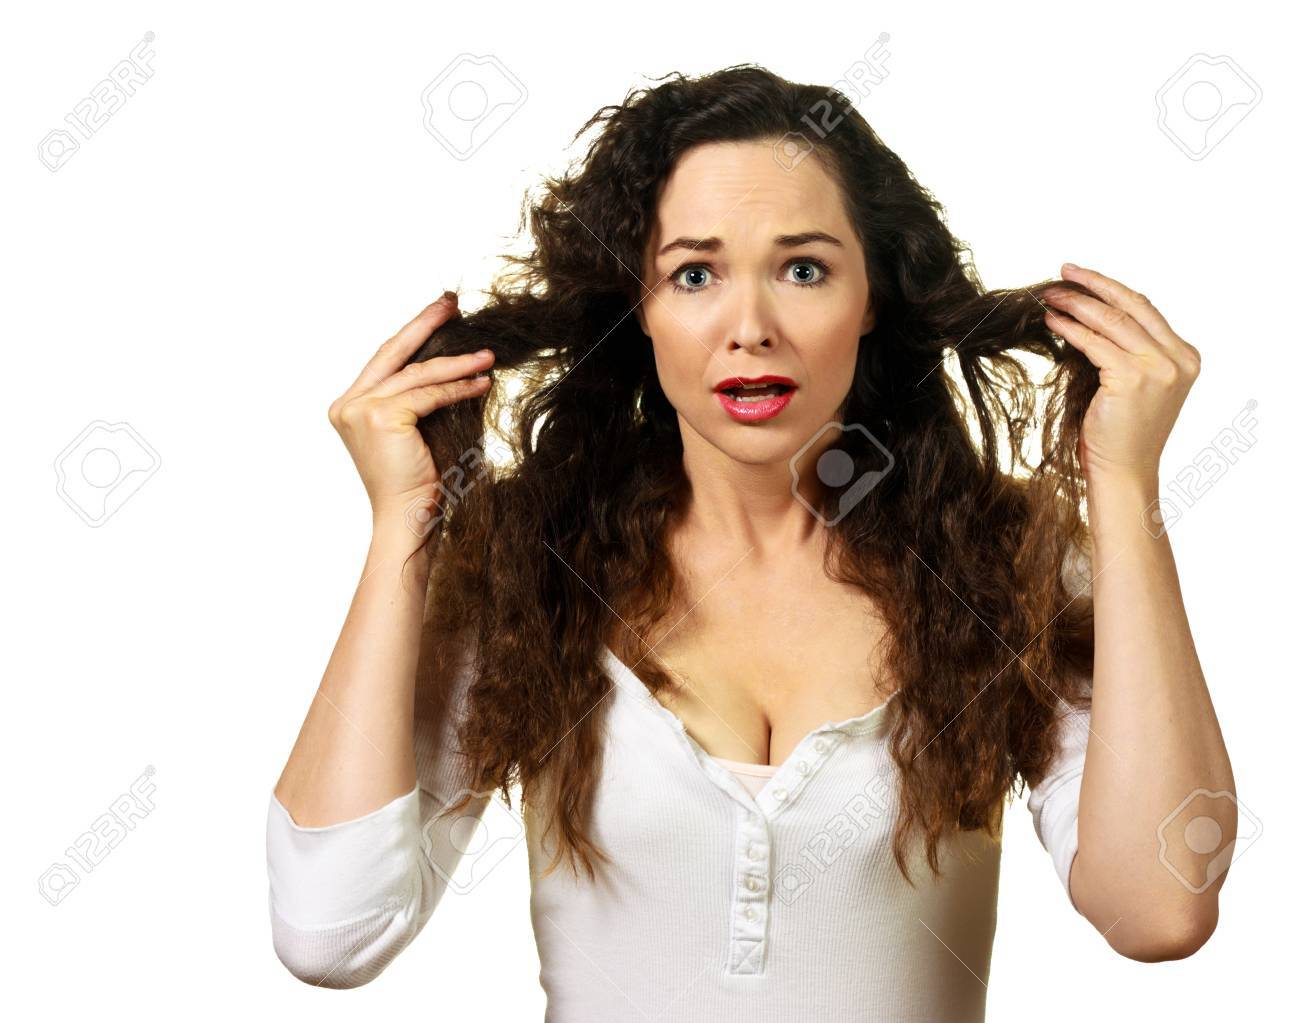 Isolated portrait of a beautiful young woman having a bad hair day - 9255136